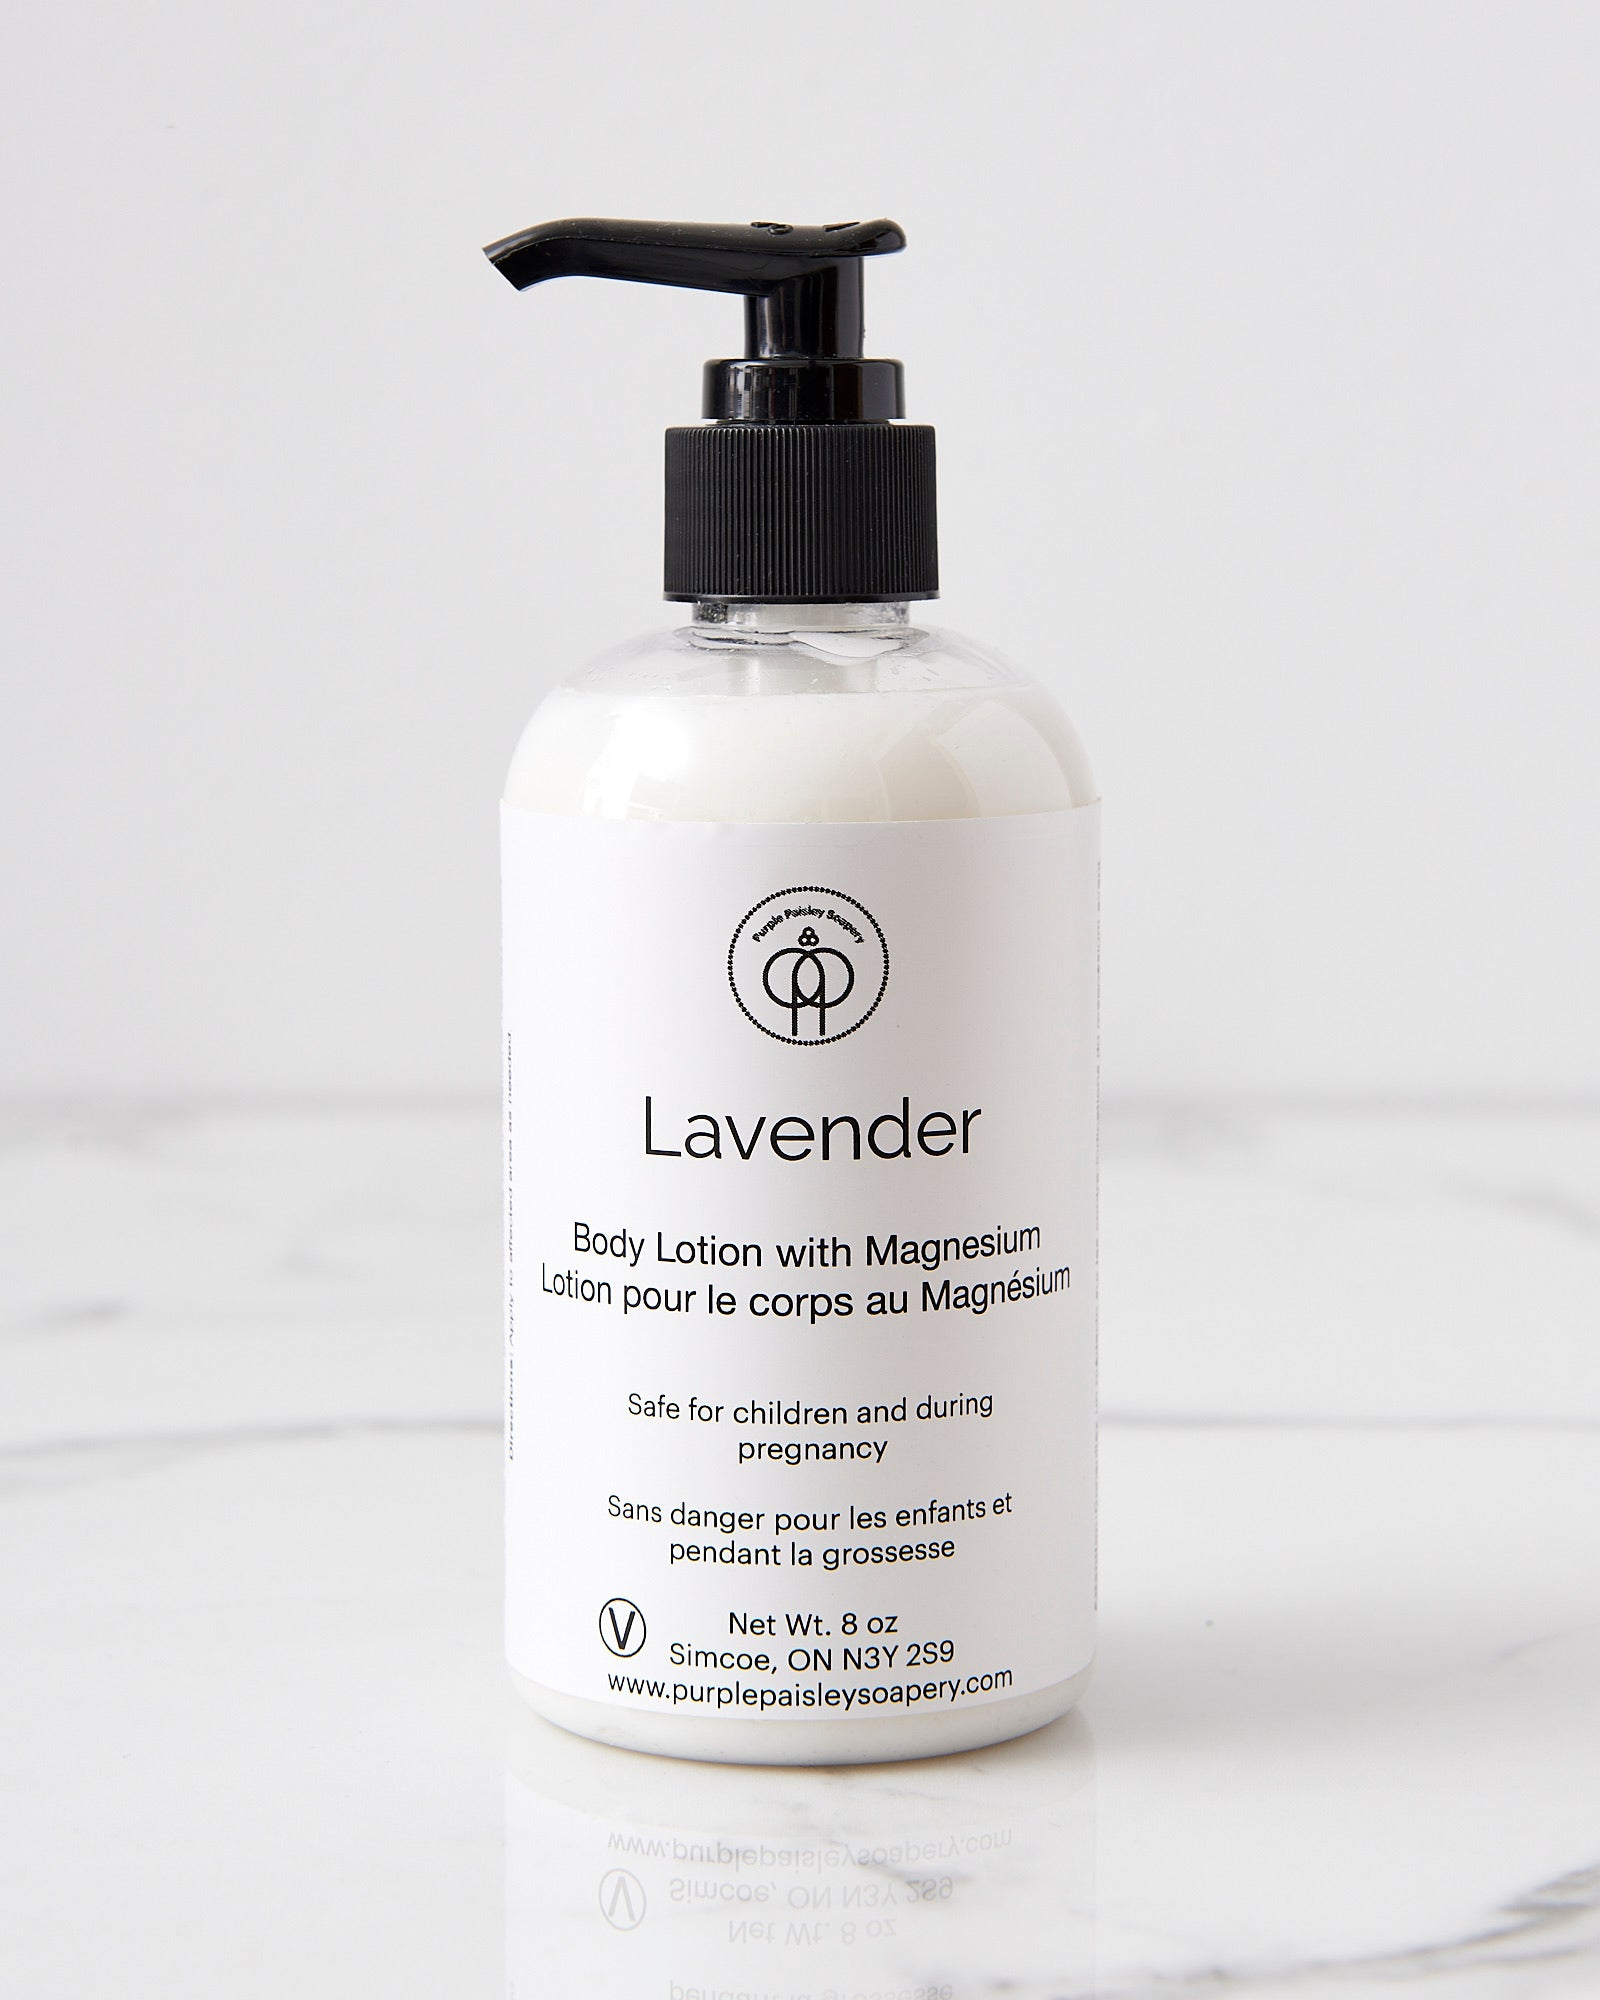 Lavender Body Lotion With Magnesium